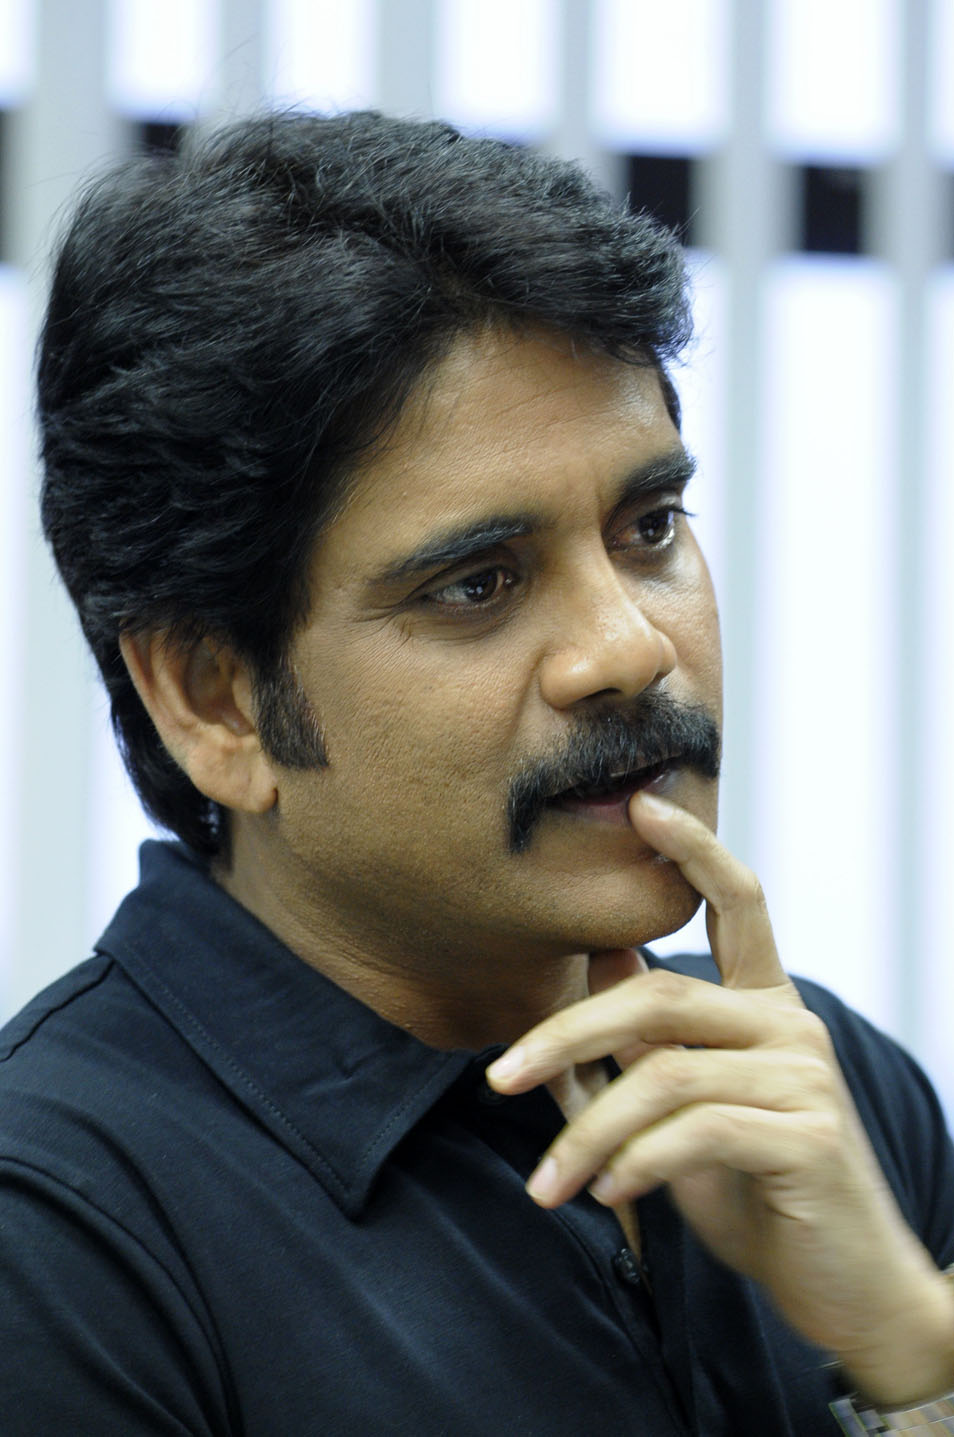 Nagarjuna-anam-Latest-Movie-Stills-4 Online Jobs From Home Without Investment on captcha free.get paid, data entry, find work,